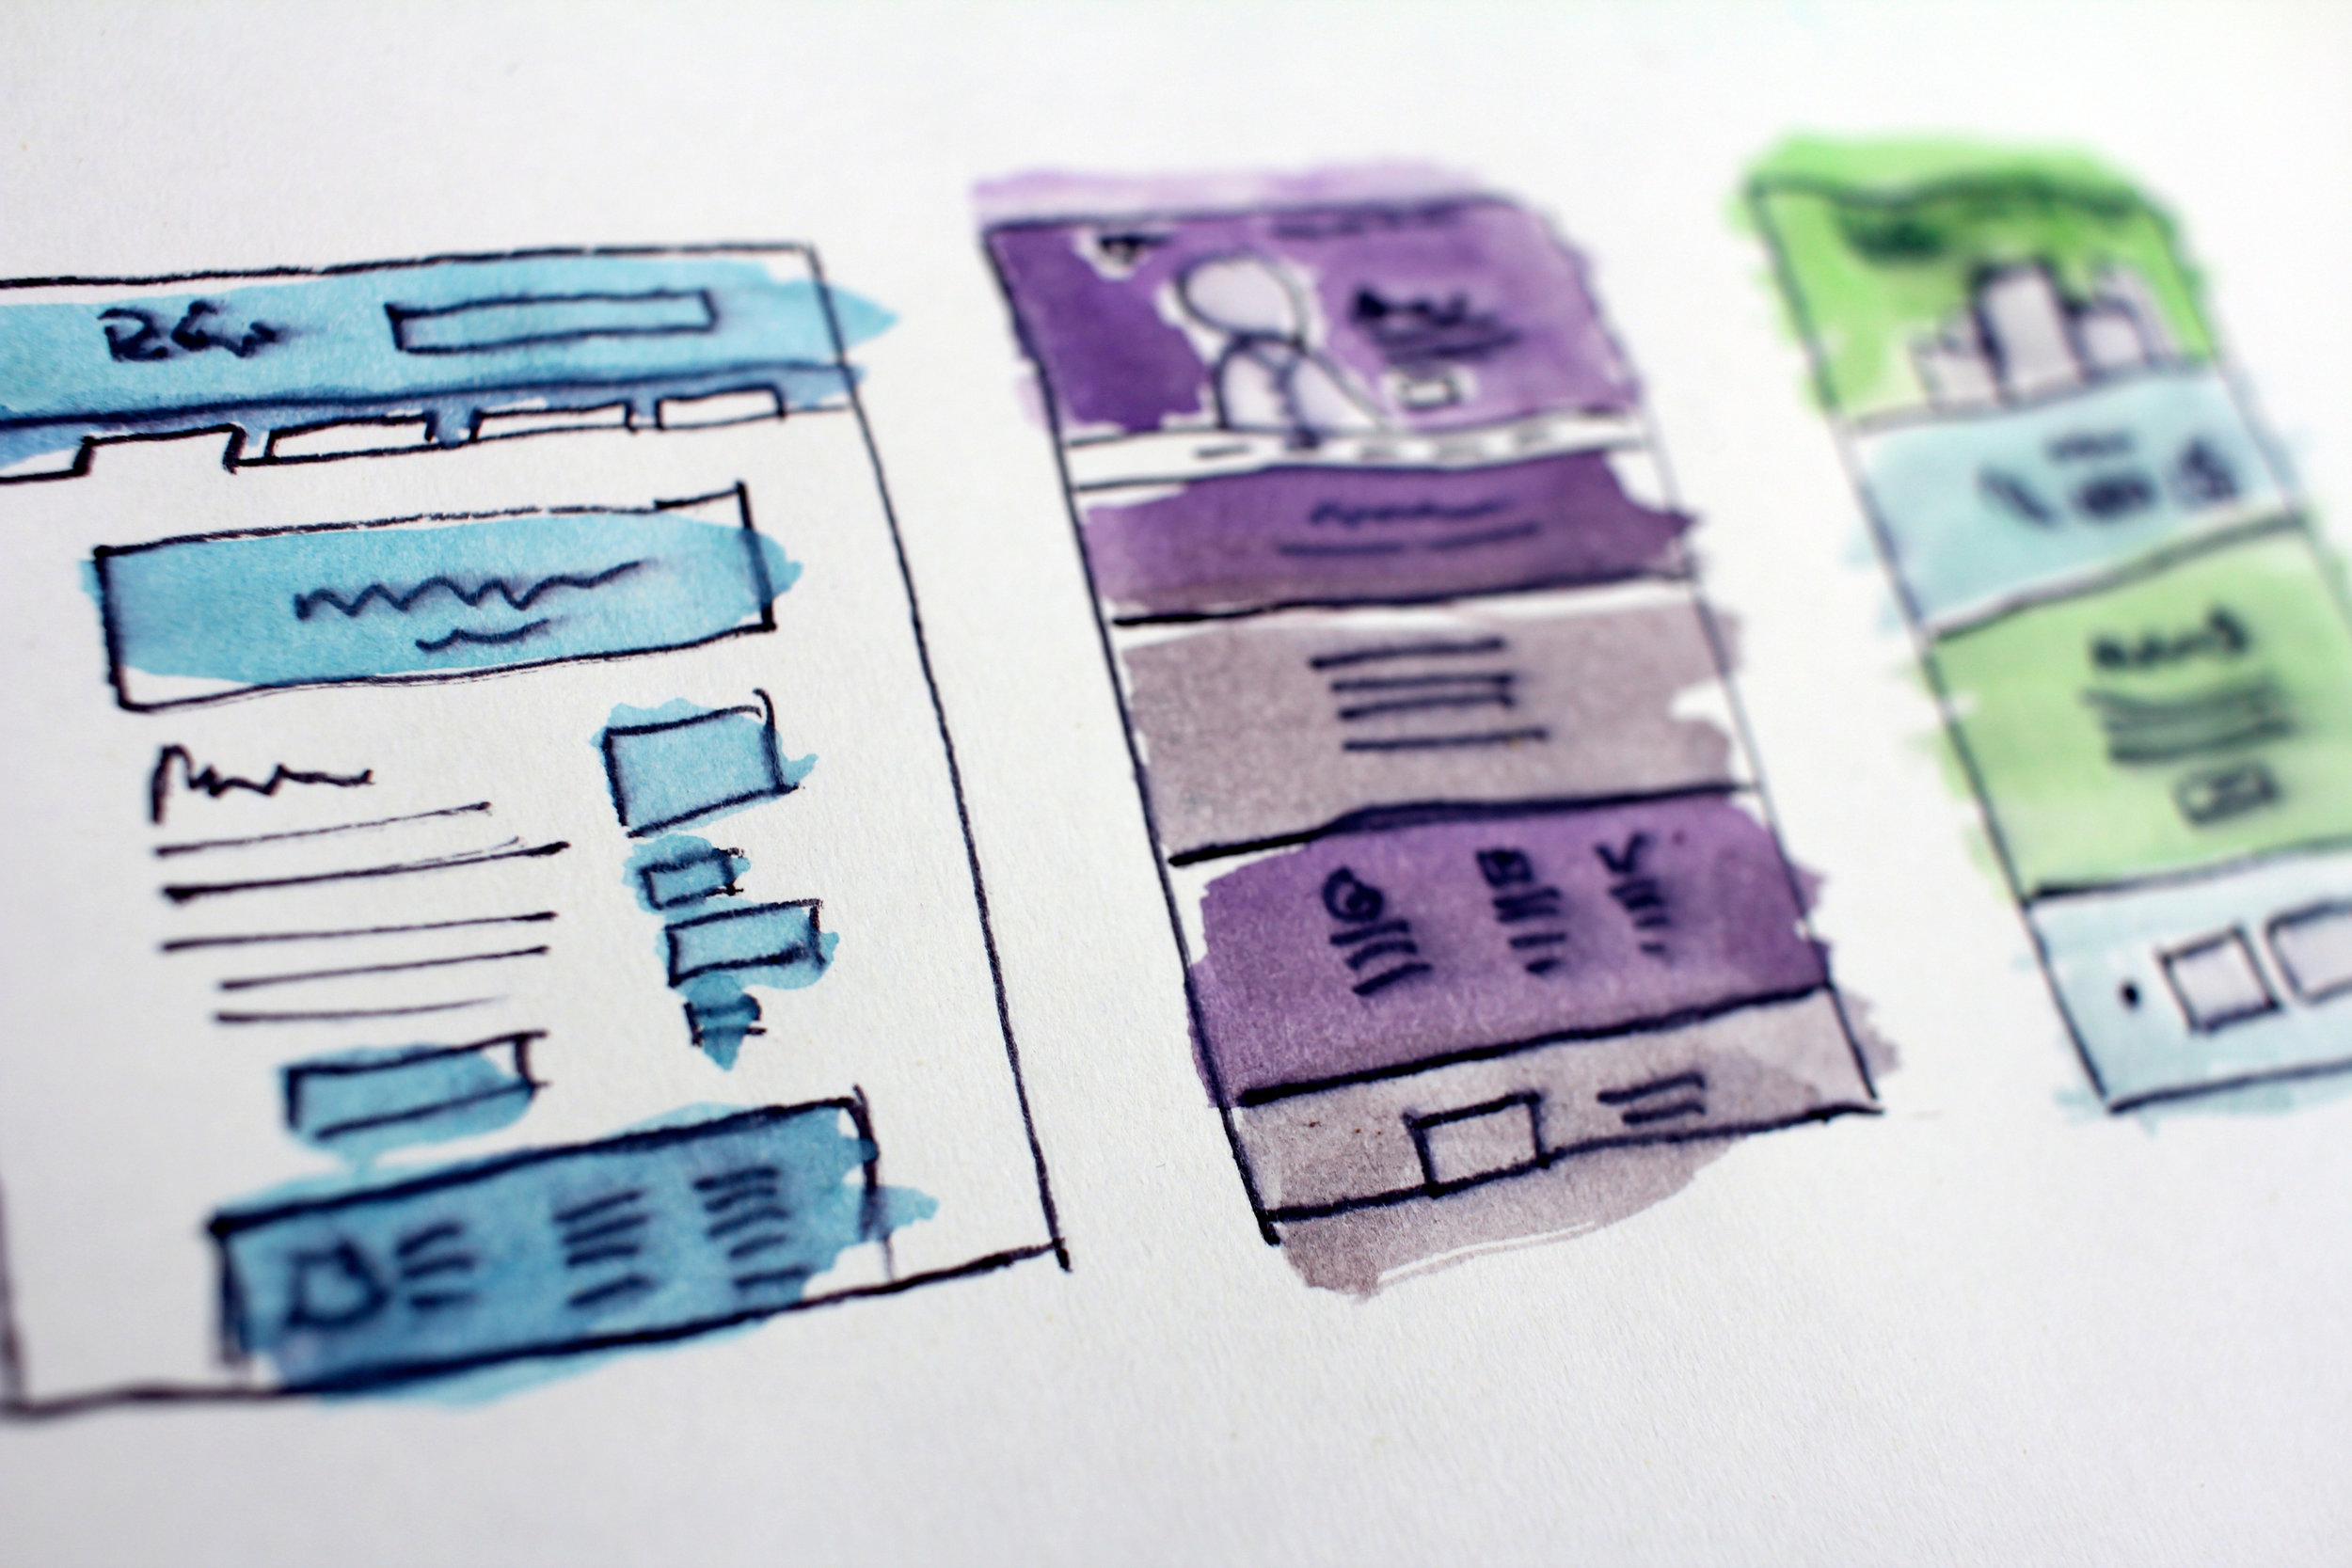 Image of some very illustrative website wireframes.